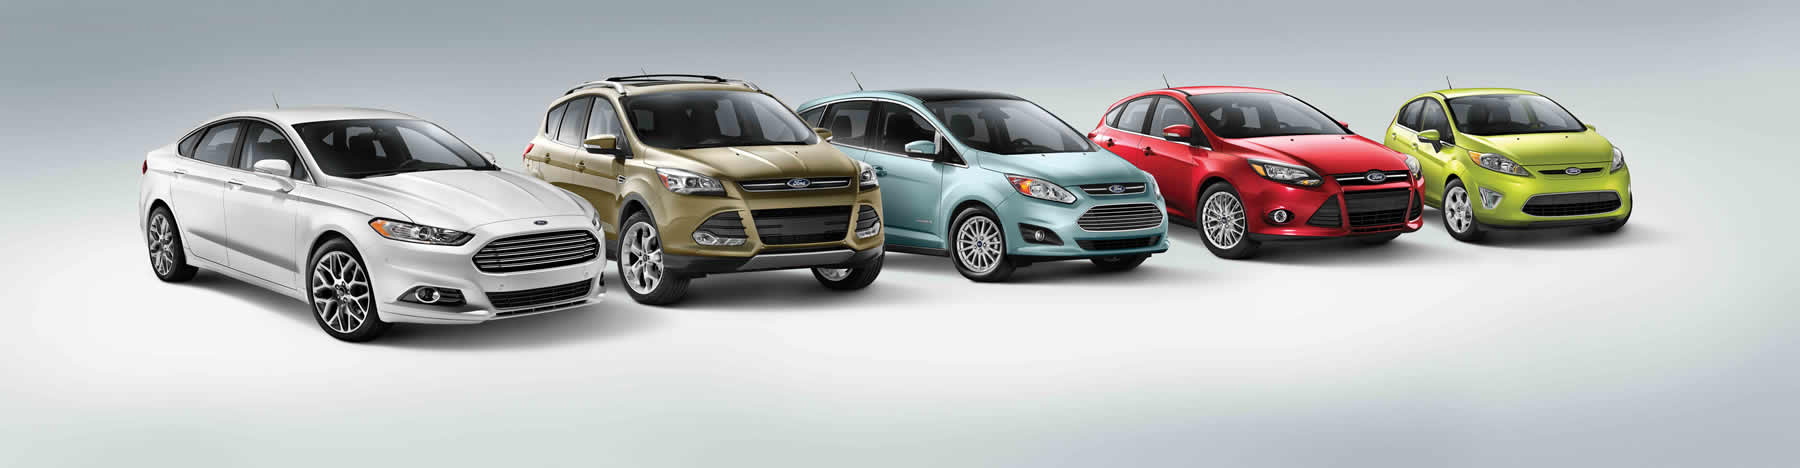 Ford-2013-Model-Lineup